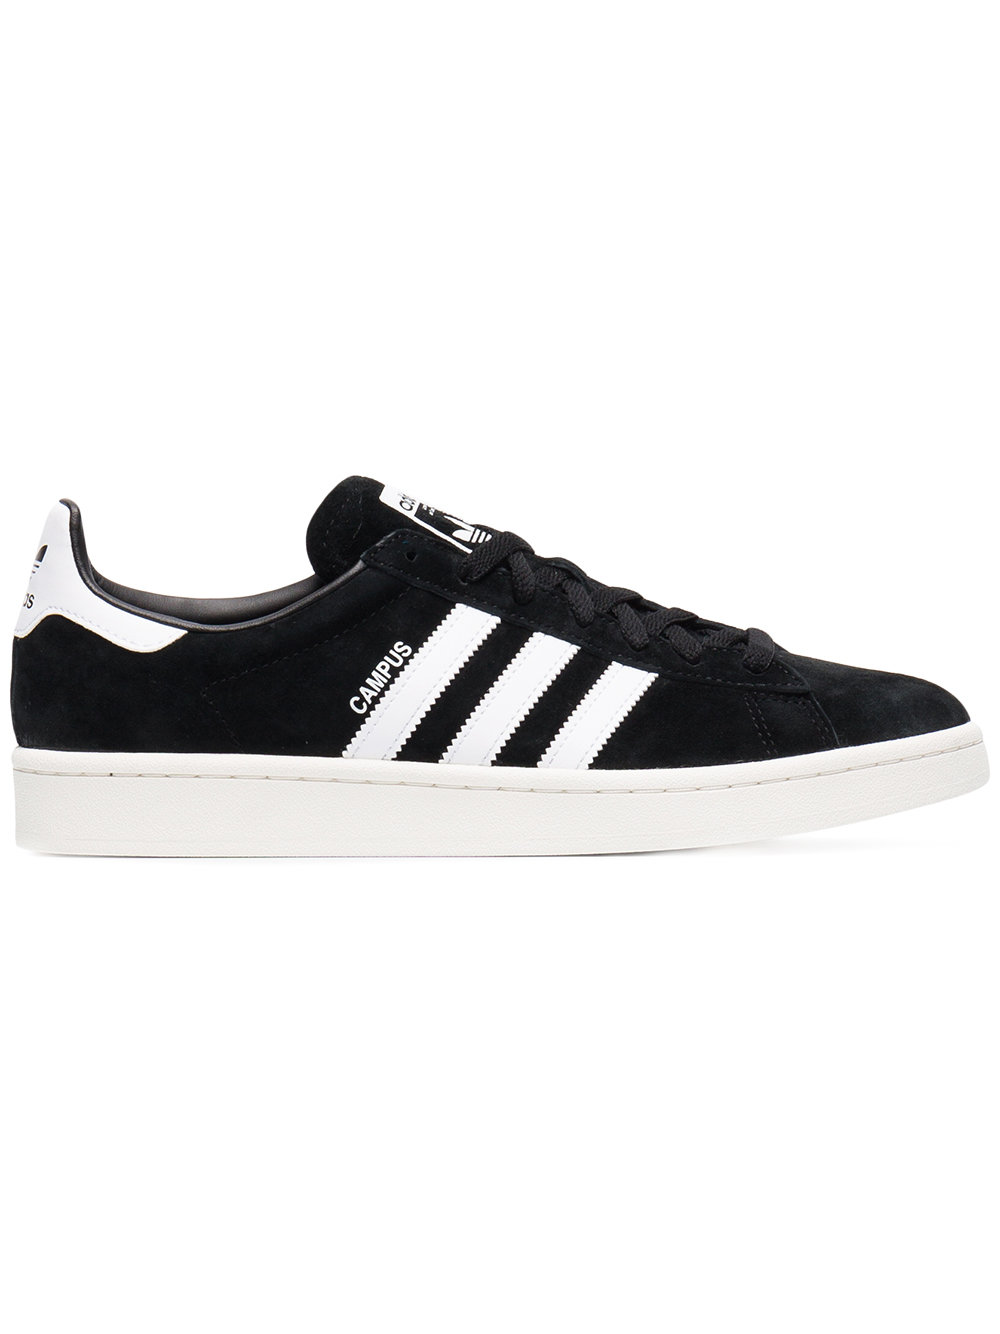 Adidas - Campus Trainers